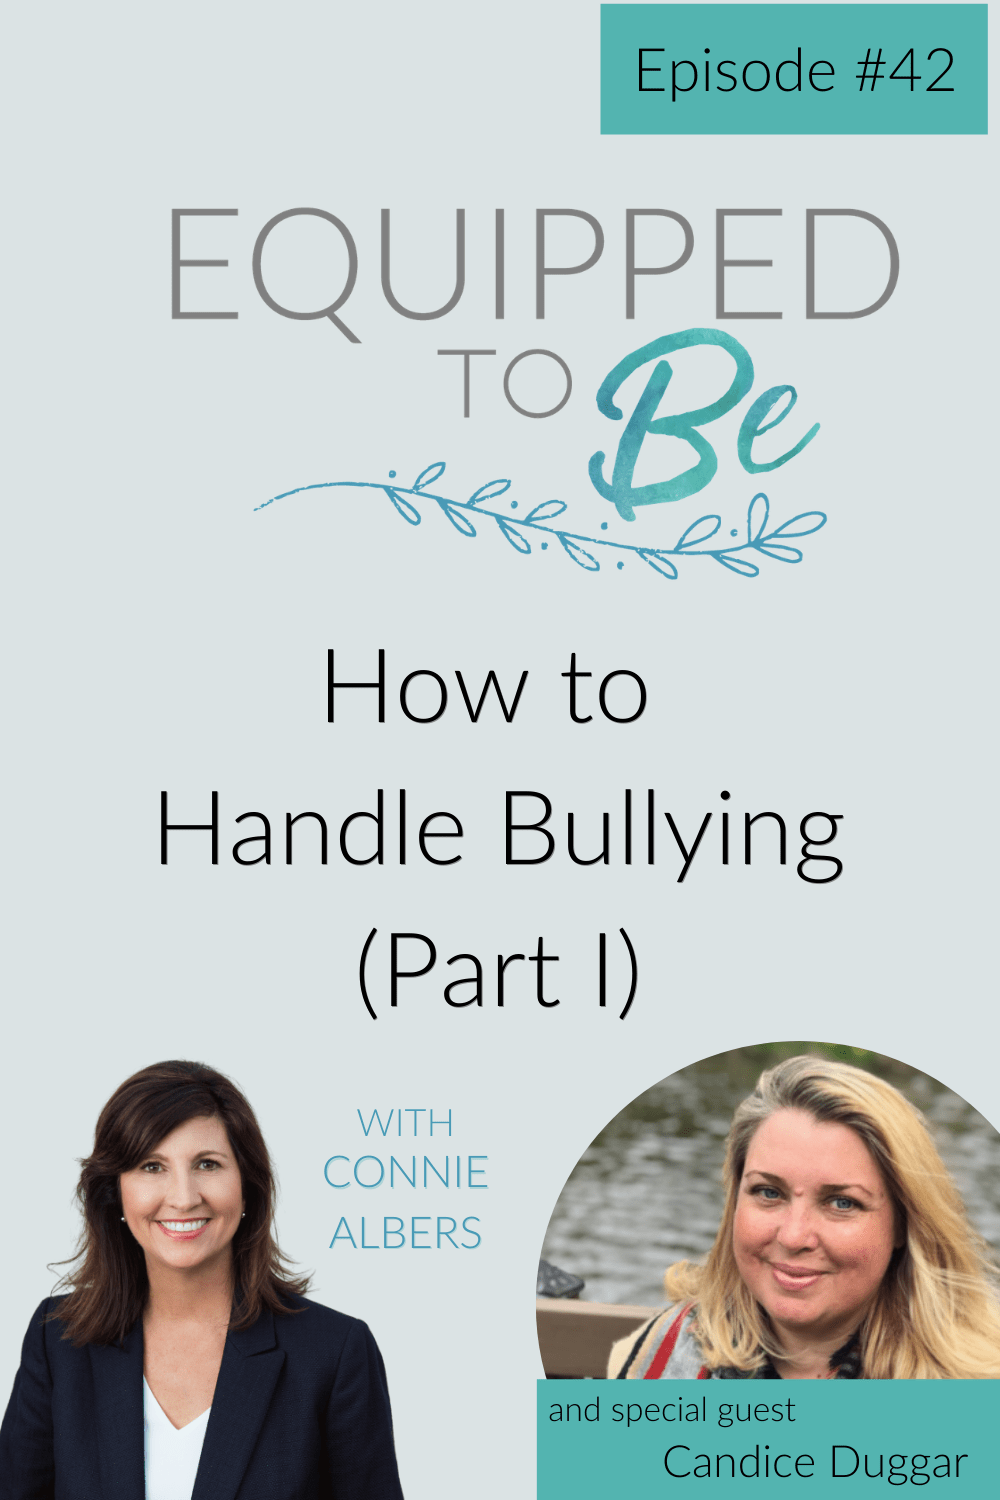 How to Handle Bullying with Candice Duggar (Part I) - ETB #42